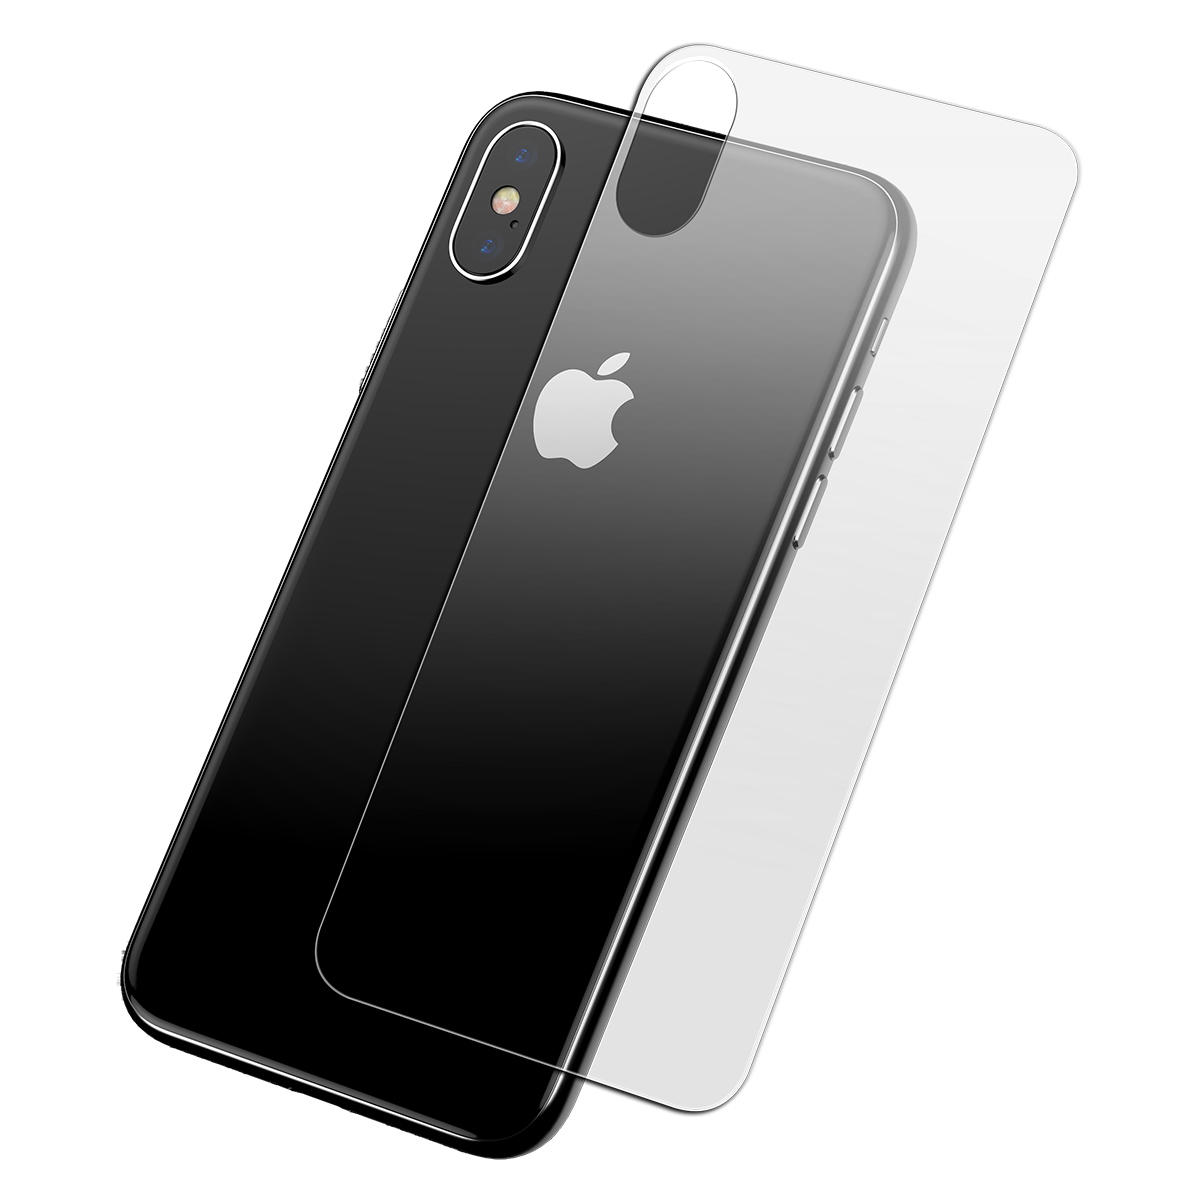 Baseus Clear Back Glass Protector For iPhone XS Max 0.3mm Scratch Resistant Anti Fingerprint All Glass